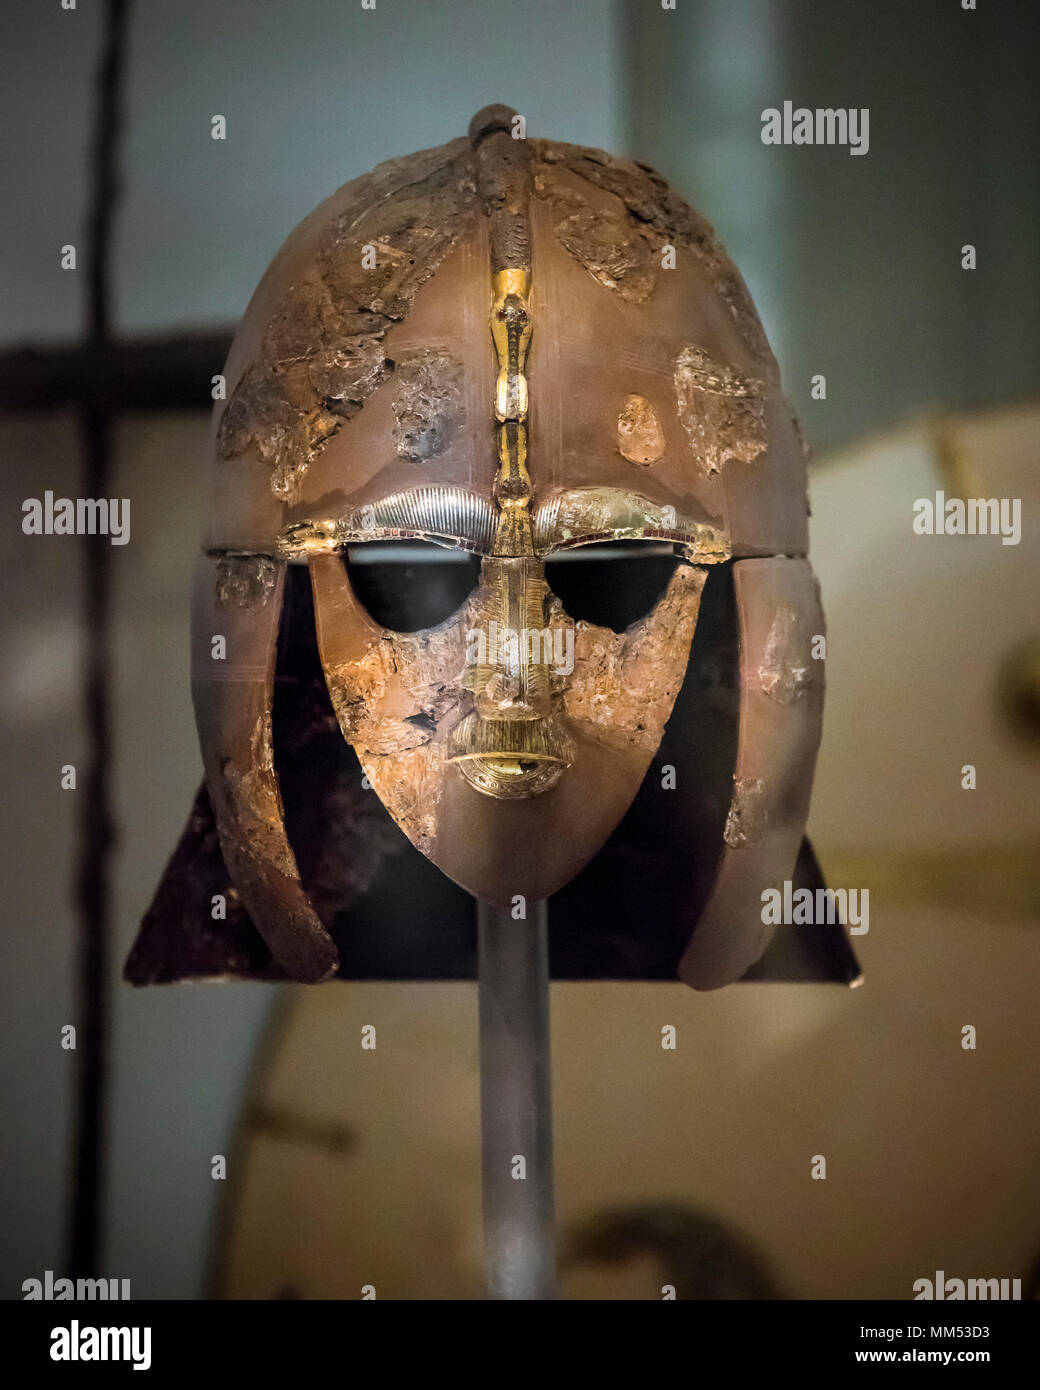 London. England. British Museum. Die Sutton Hoo Helm. Die Sutton Hoo Schiff vergraben in Suffolk, England, ausgegraben in 1939, ist einer der wichtigsten Stockbild